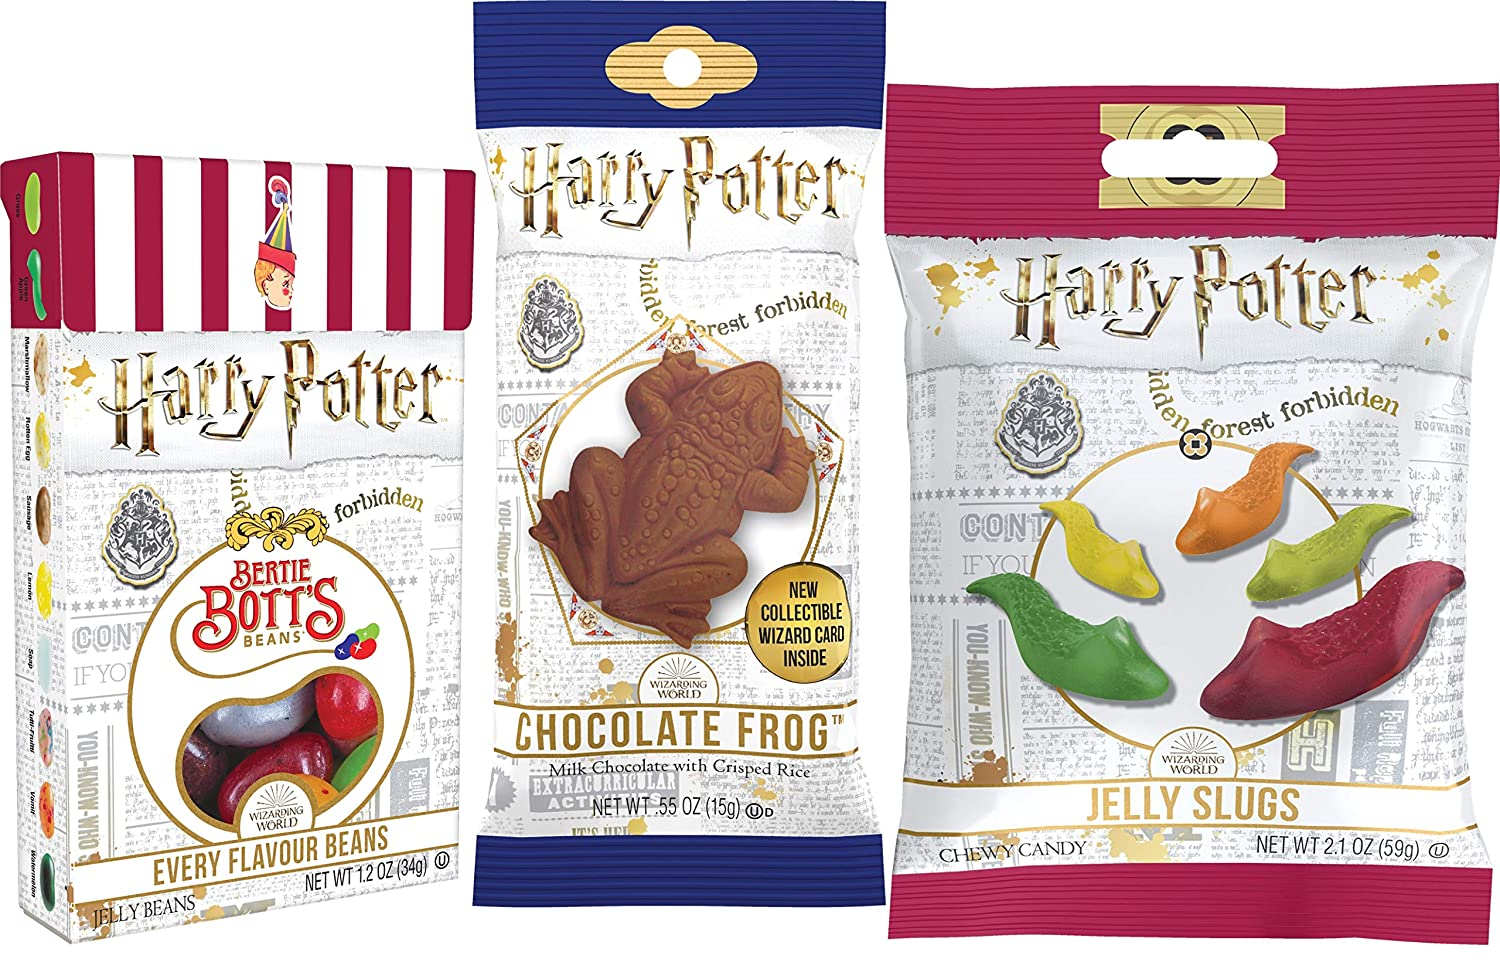 Harry Potter Jelly Gummy Candy Slugs, Bertie Botts Every Flavour Jelly Beans & Chocolate Crispy Frog (Bundle of 3 Items)